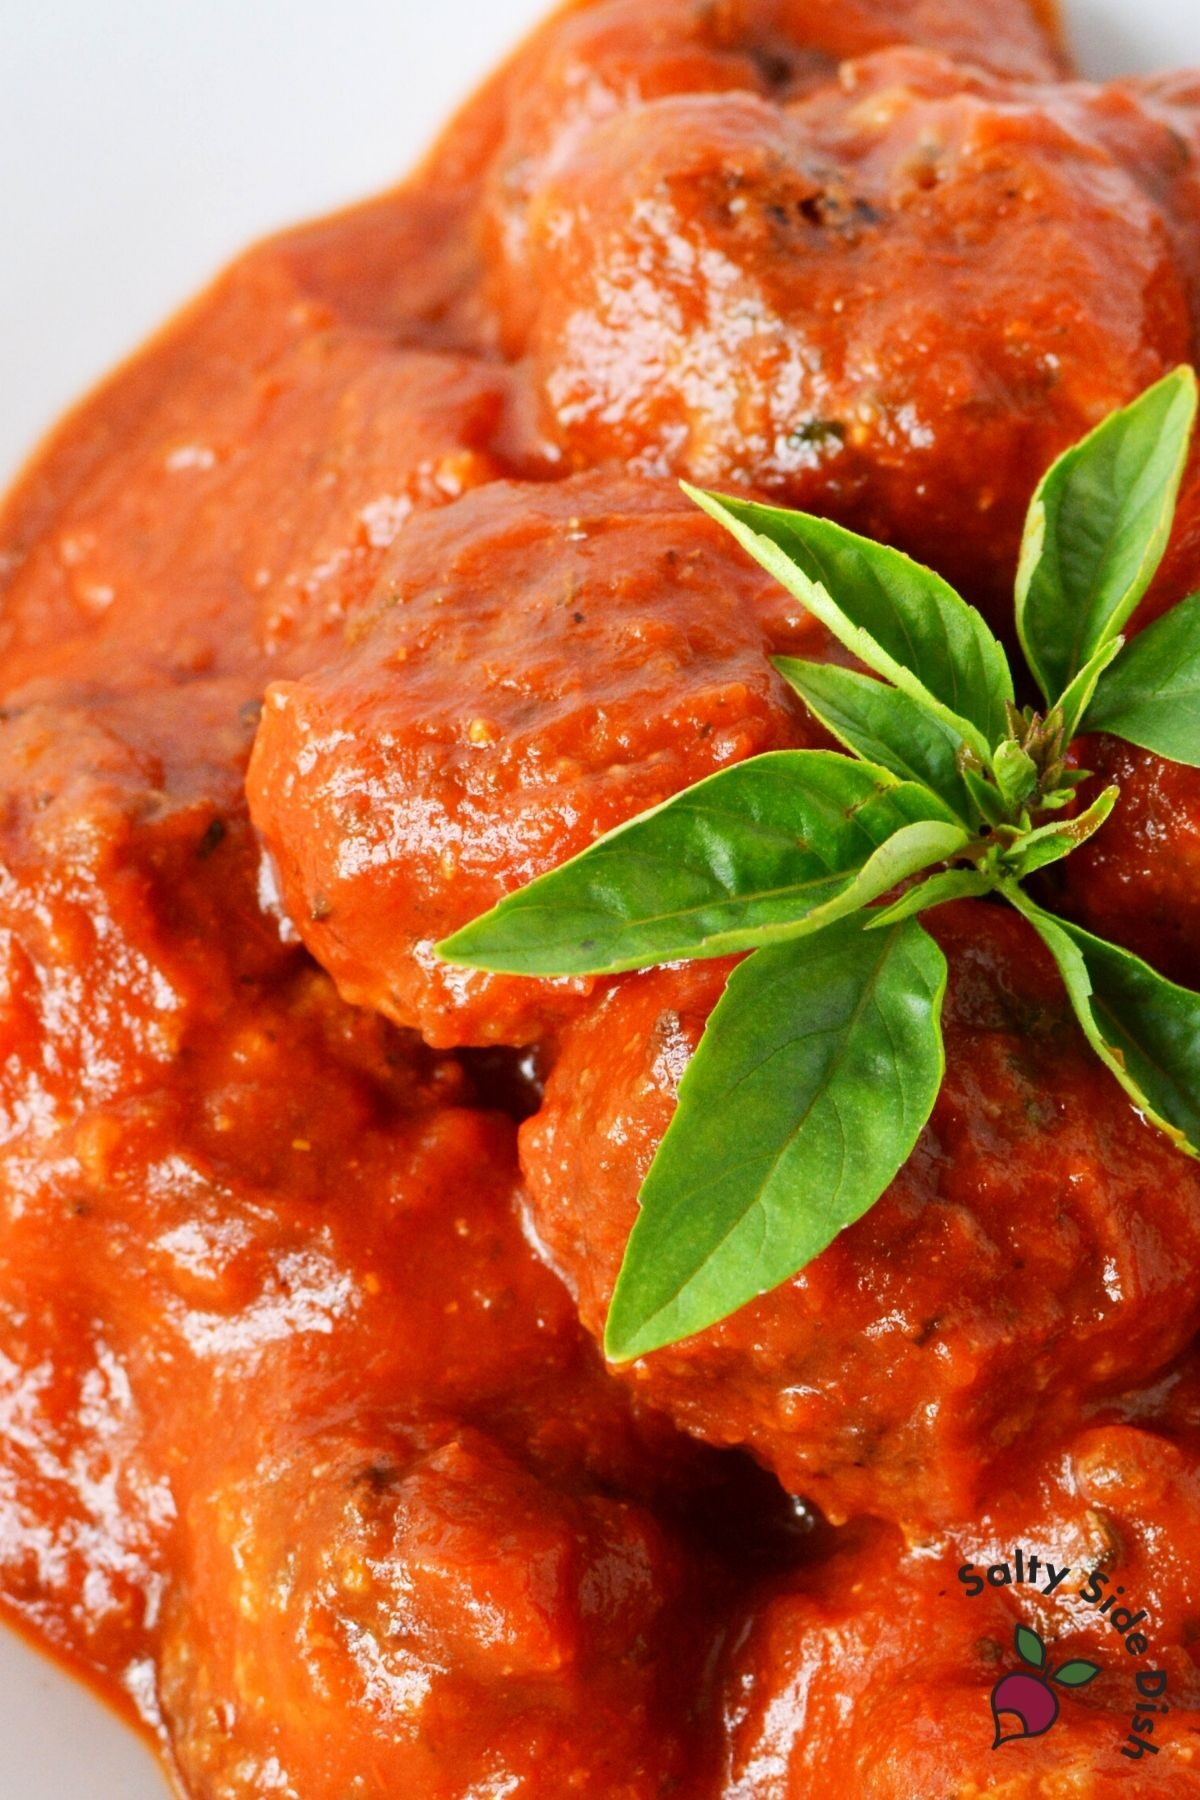 homemade meatballs with red sauce and dried herbs on top.